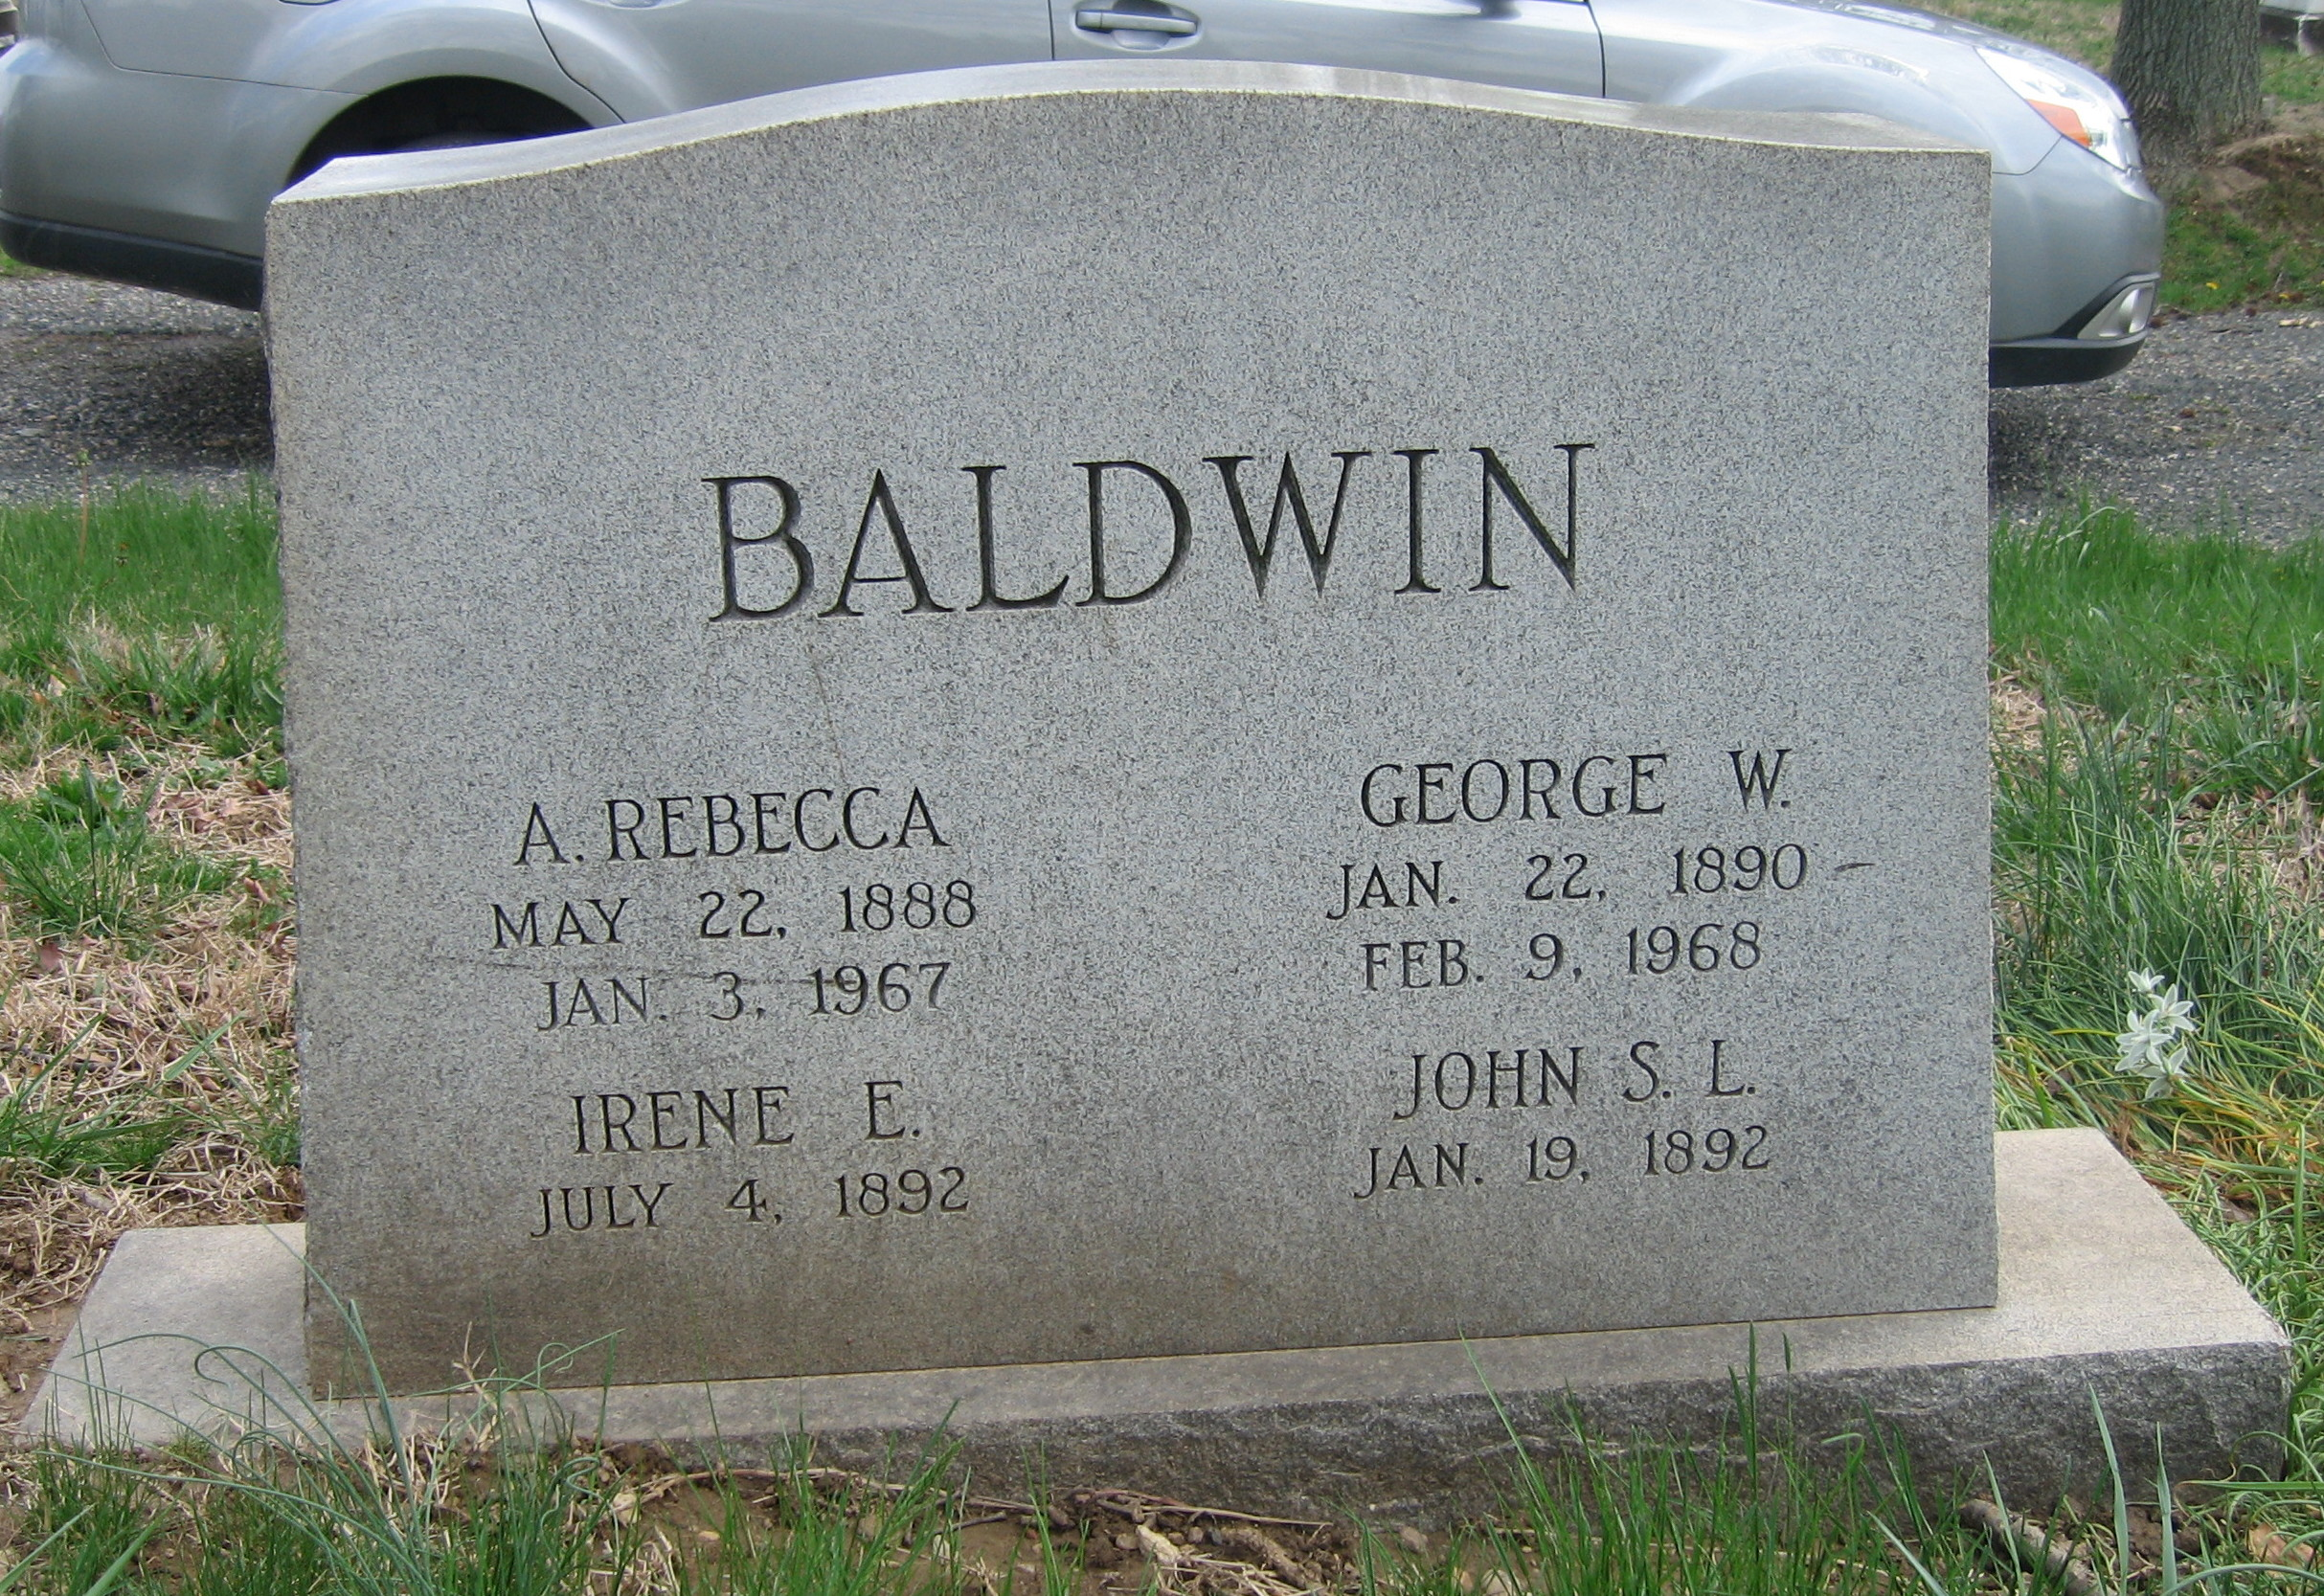 William George Baldwin